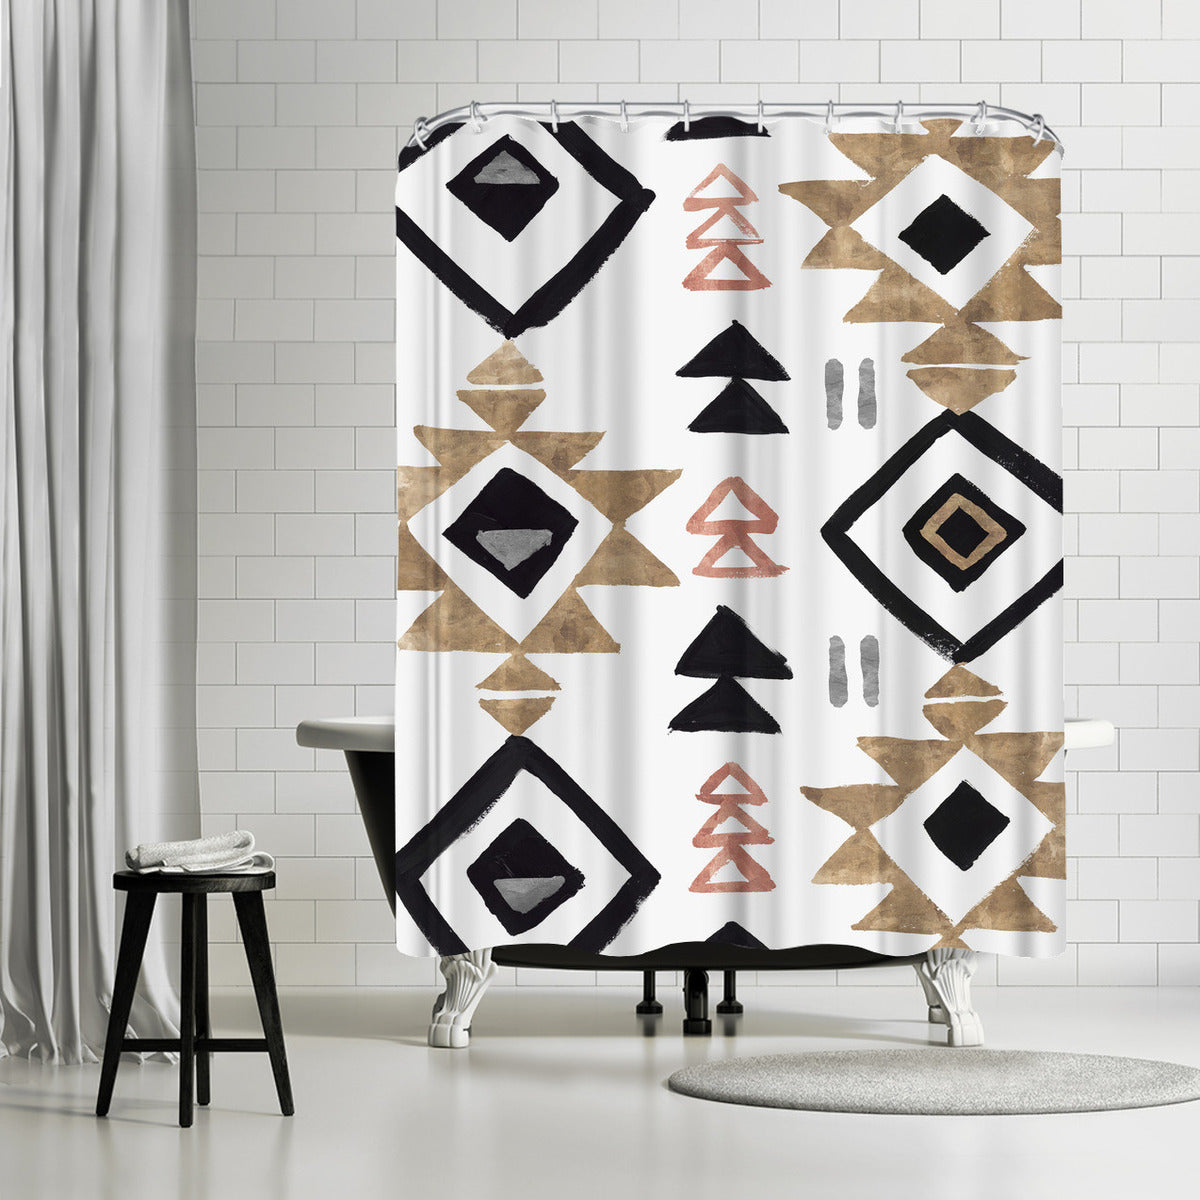 Rhythmics Iii by PI Creative Art Shower Curtain - Shower Curtain - Americanflat